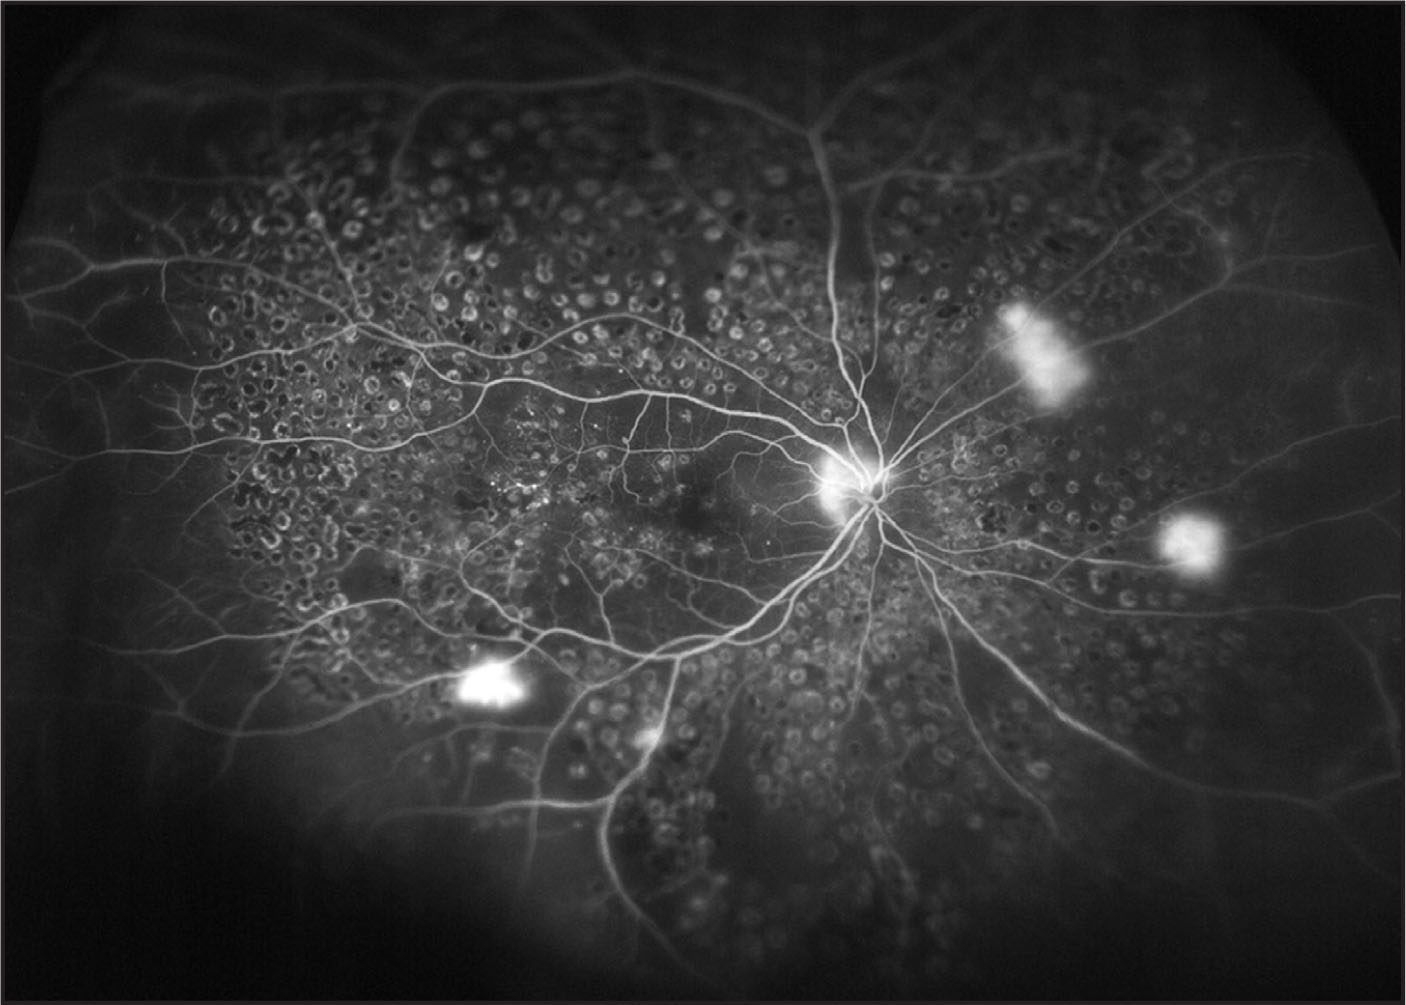 Widefield fluorescein angiogram taken using the Optos 200Tx (Optos, Dunfermline, U.K.). Despite extensive panretinal photocoagulation, areas of capillary nonperfusion are seen together with several areas of hyperfluorescence caused by leakage from retinal neo-vascularization at the optic disc and elsewhere.